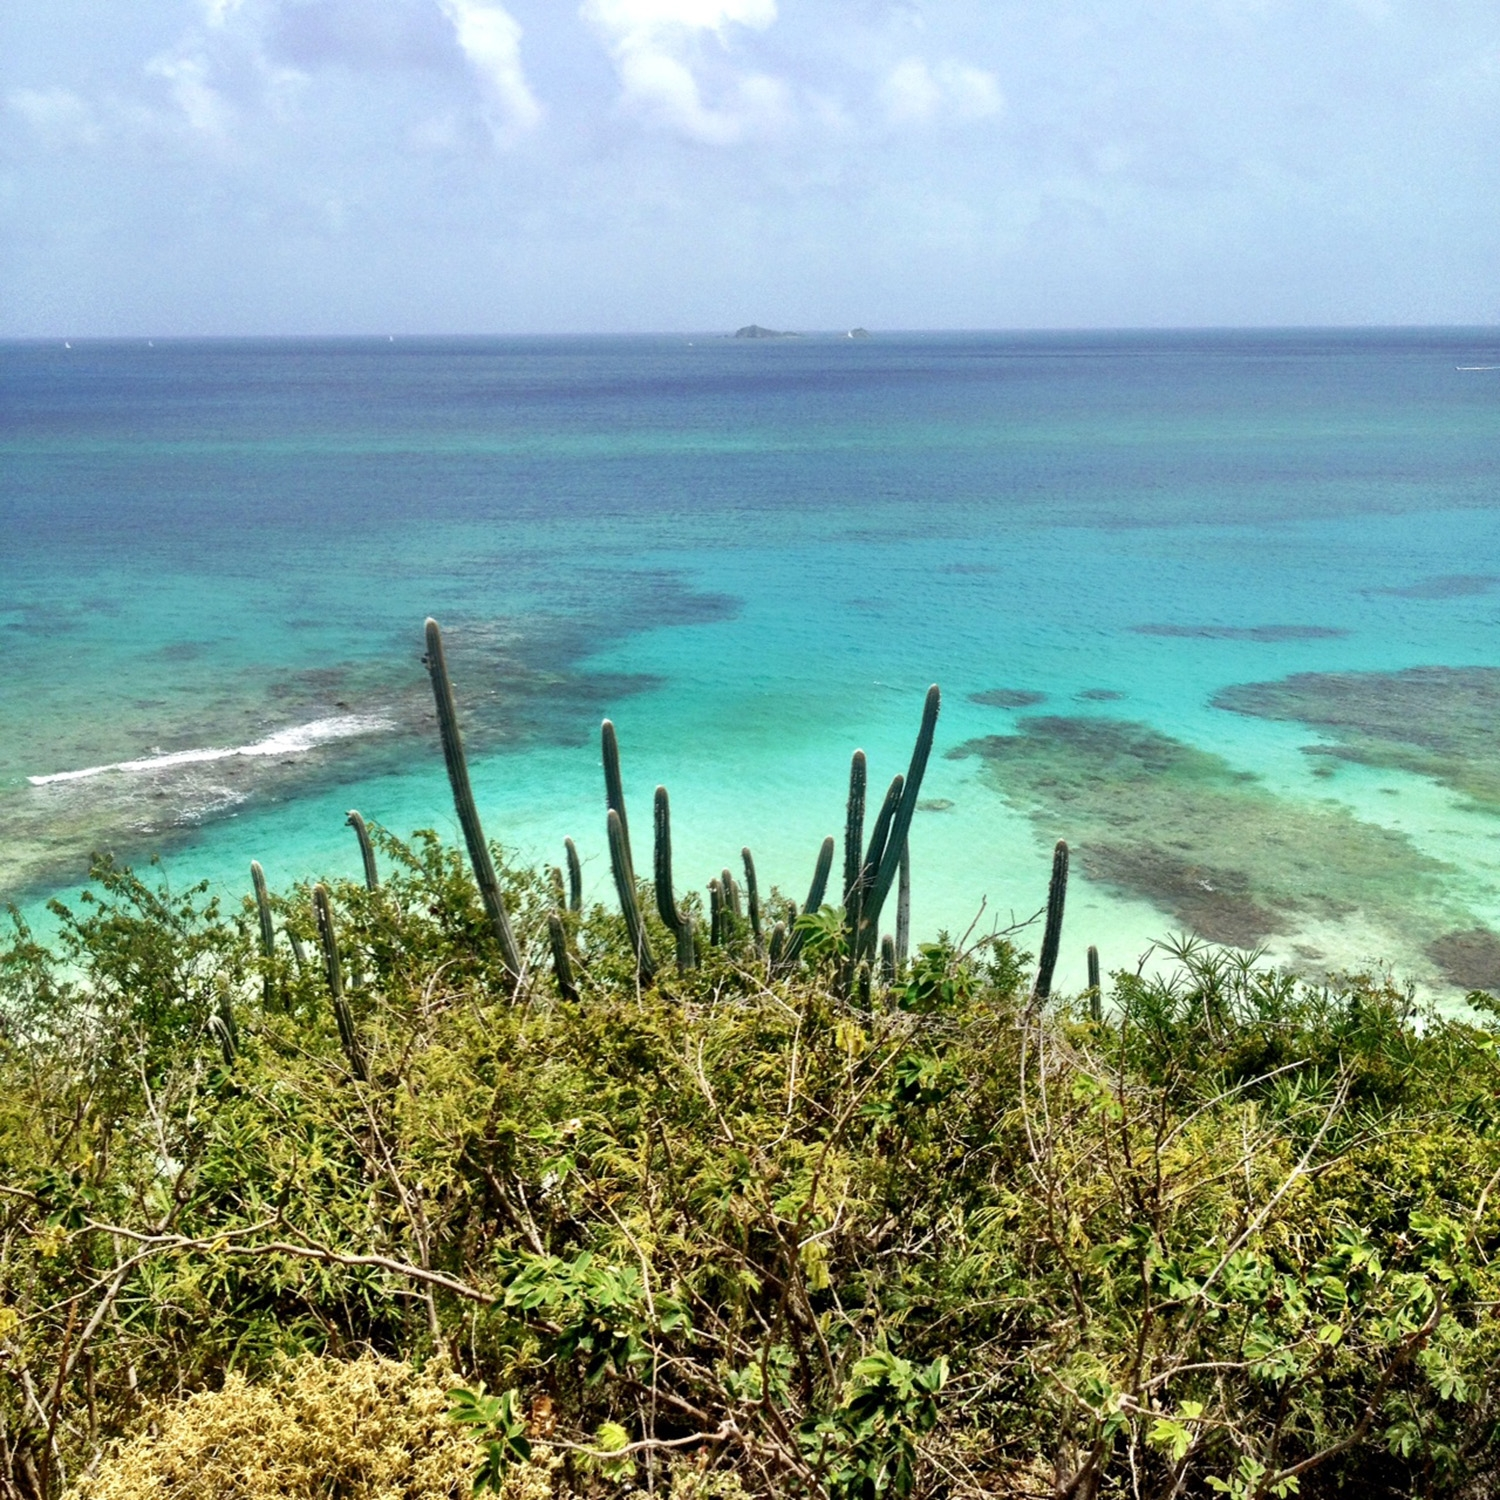 Looking down at the turquoise reefs and clear ocean water from a small hill